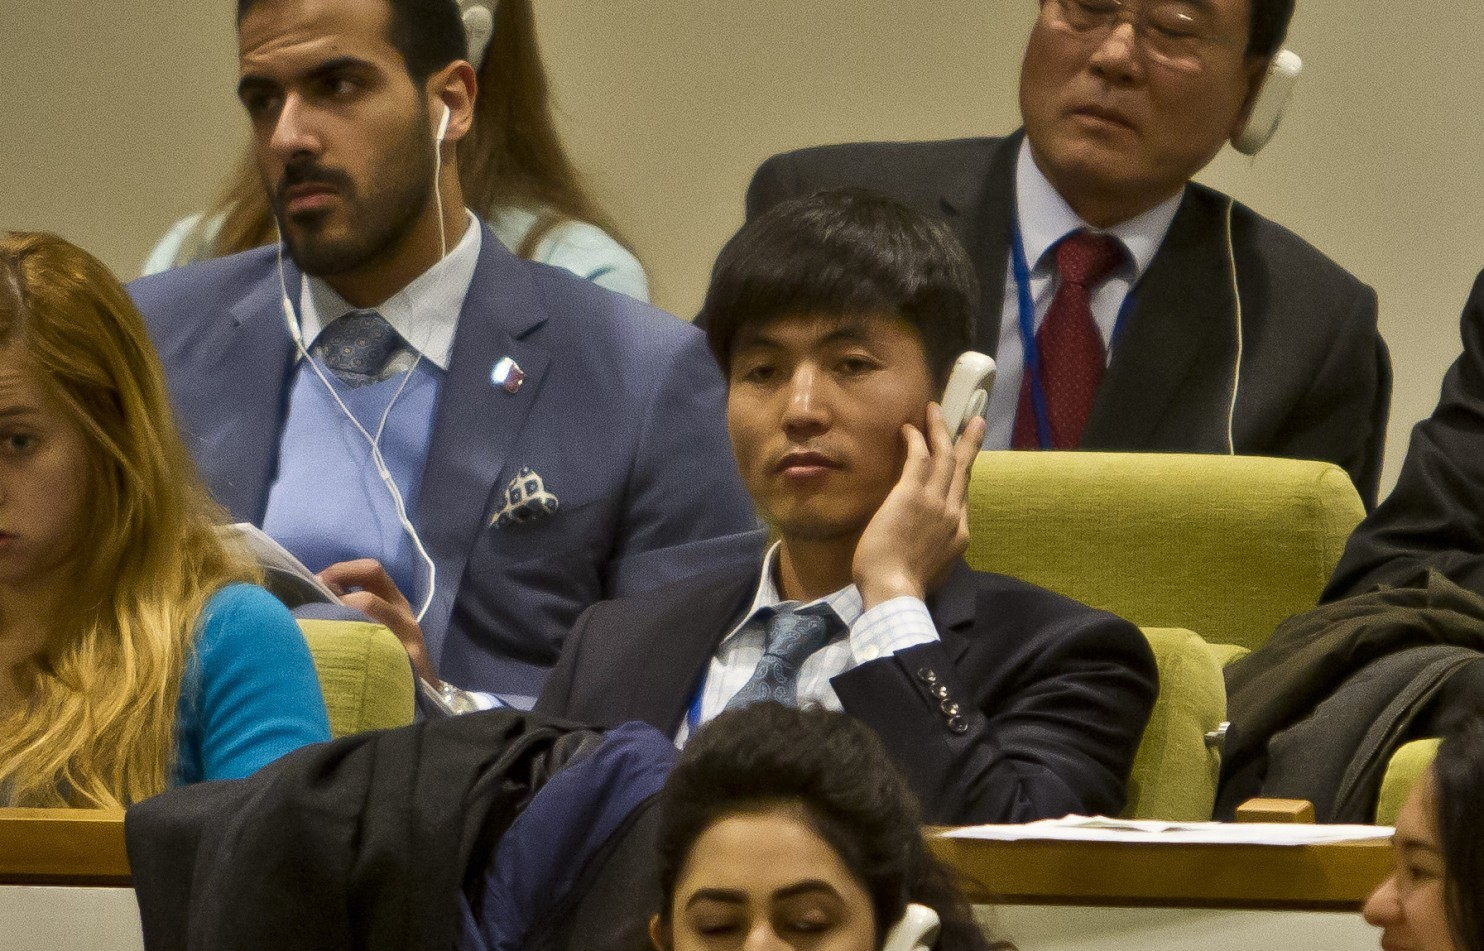 Shin at UN during vote on referral 11 18 14